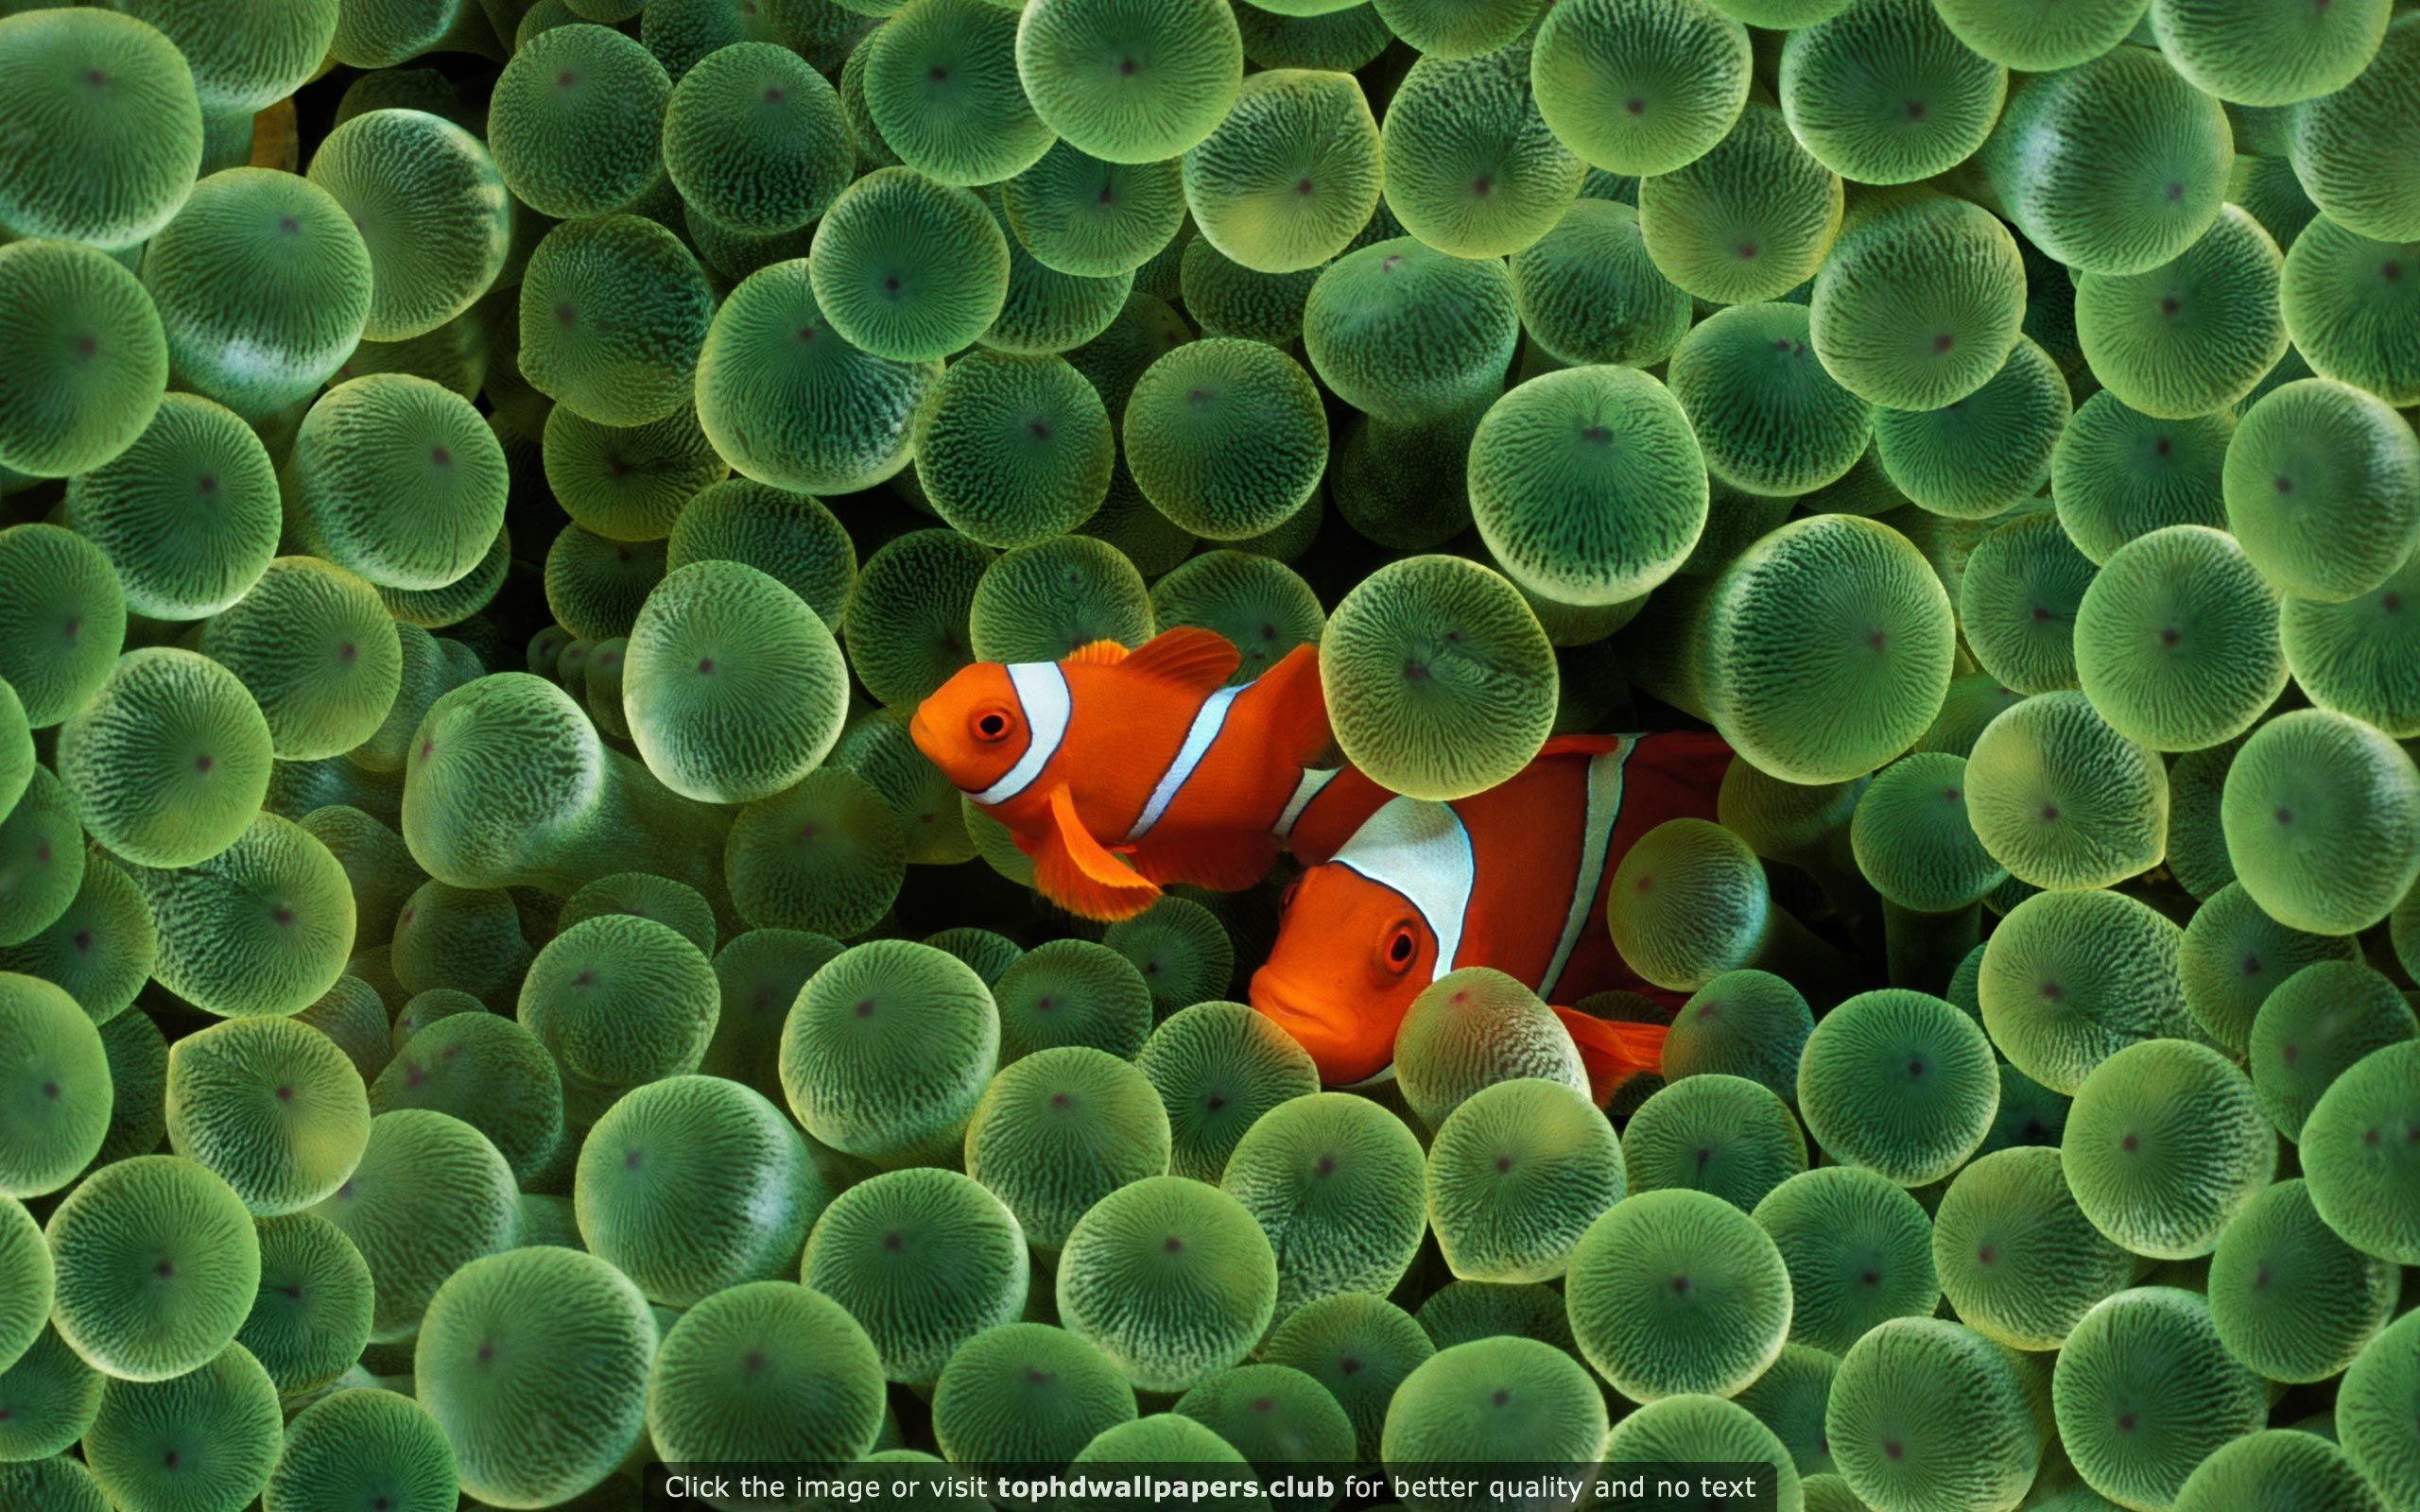 Apple Fish Hd Widescreen Hd Wallpaper For Your Pc Mac Or Mobile